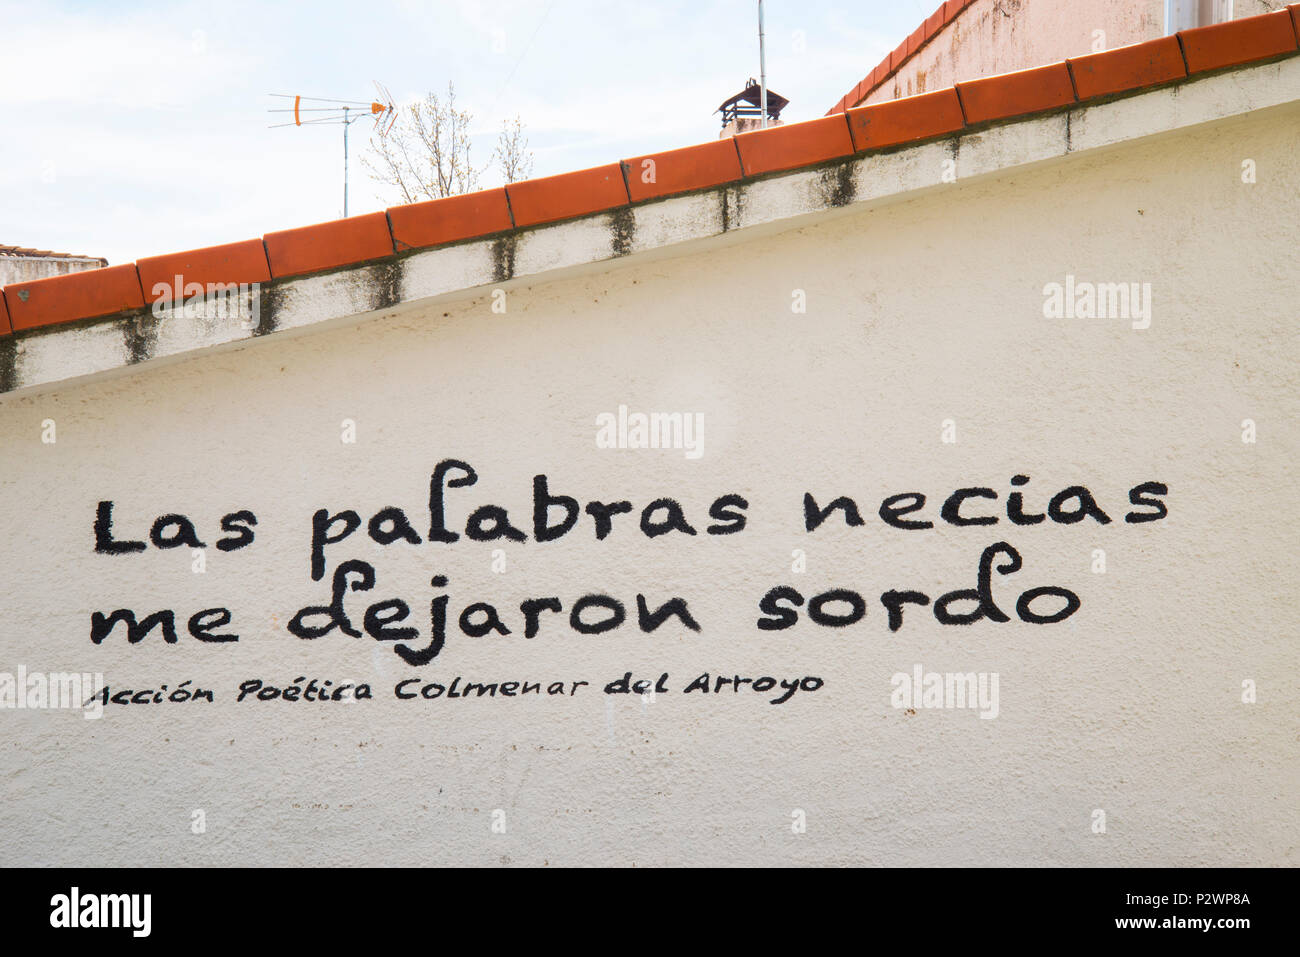 Text written on a whitewashed facade. Colmenar del Arroyo, Madrid province, Spain. - Stock Image